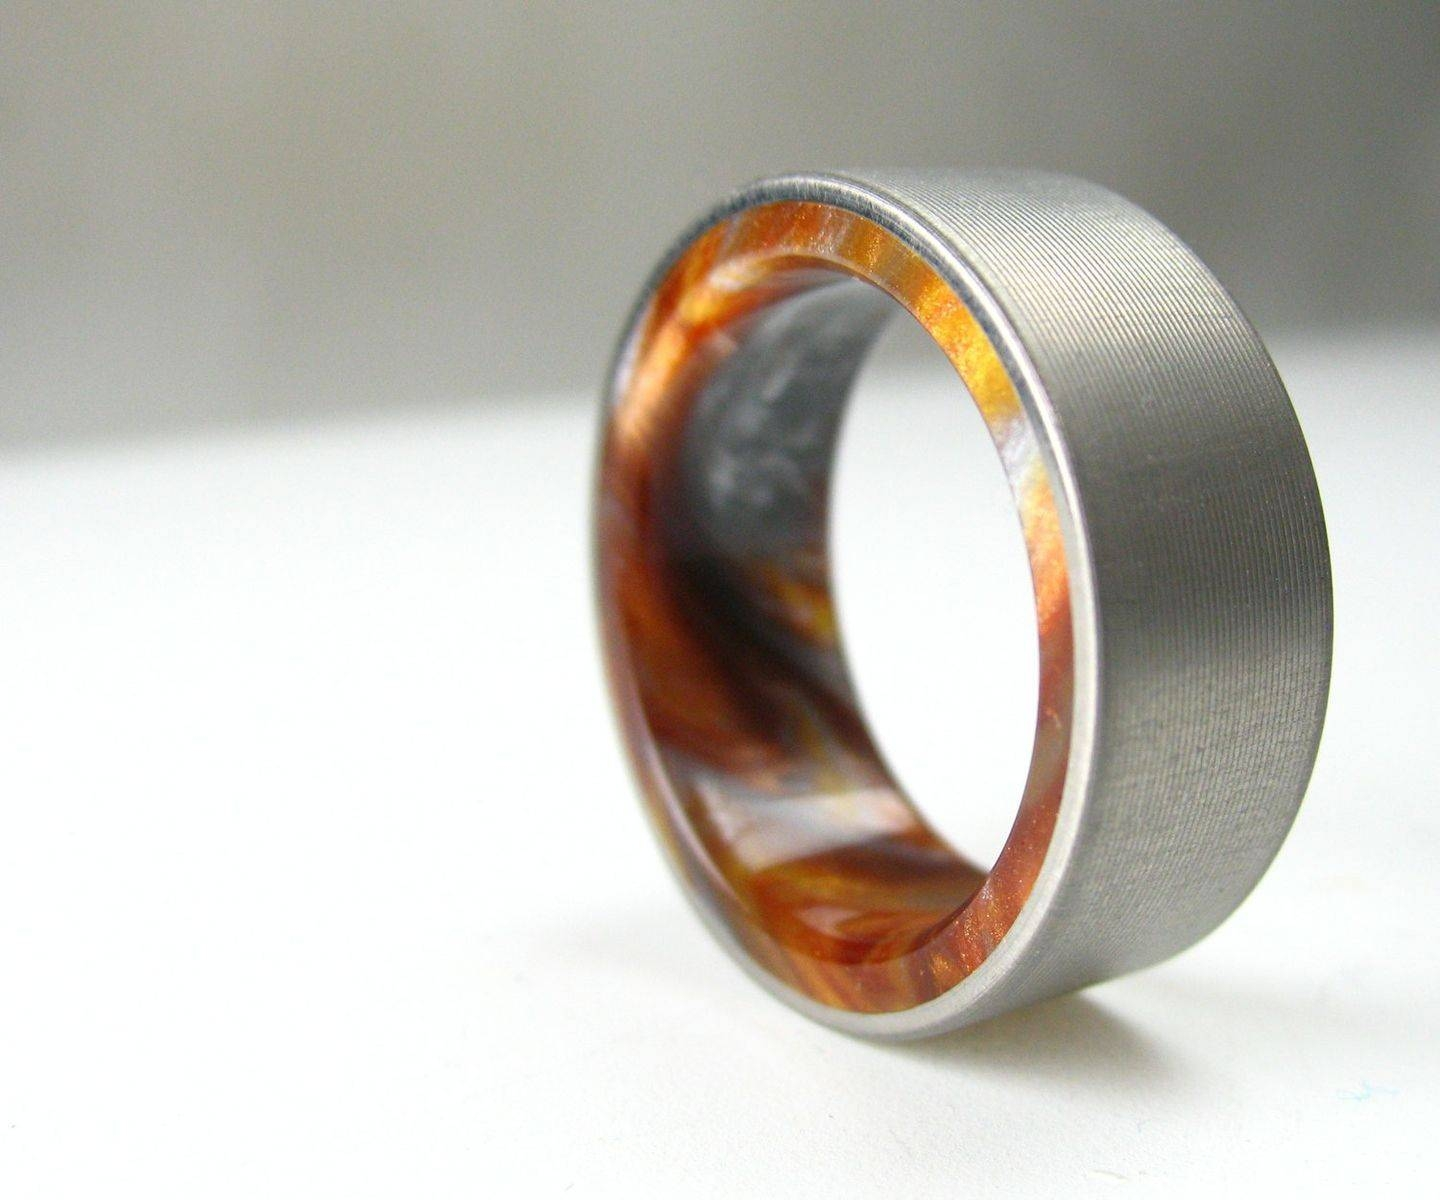 Modern Wedding Bands | Contemporary Wedding Rings | Custommade With Wood Wedding Bands (View 15 of 15)